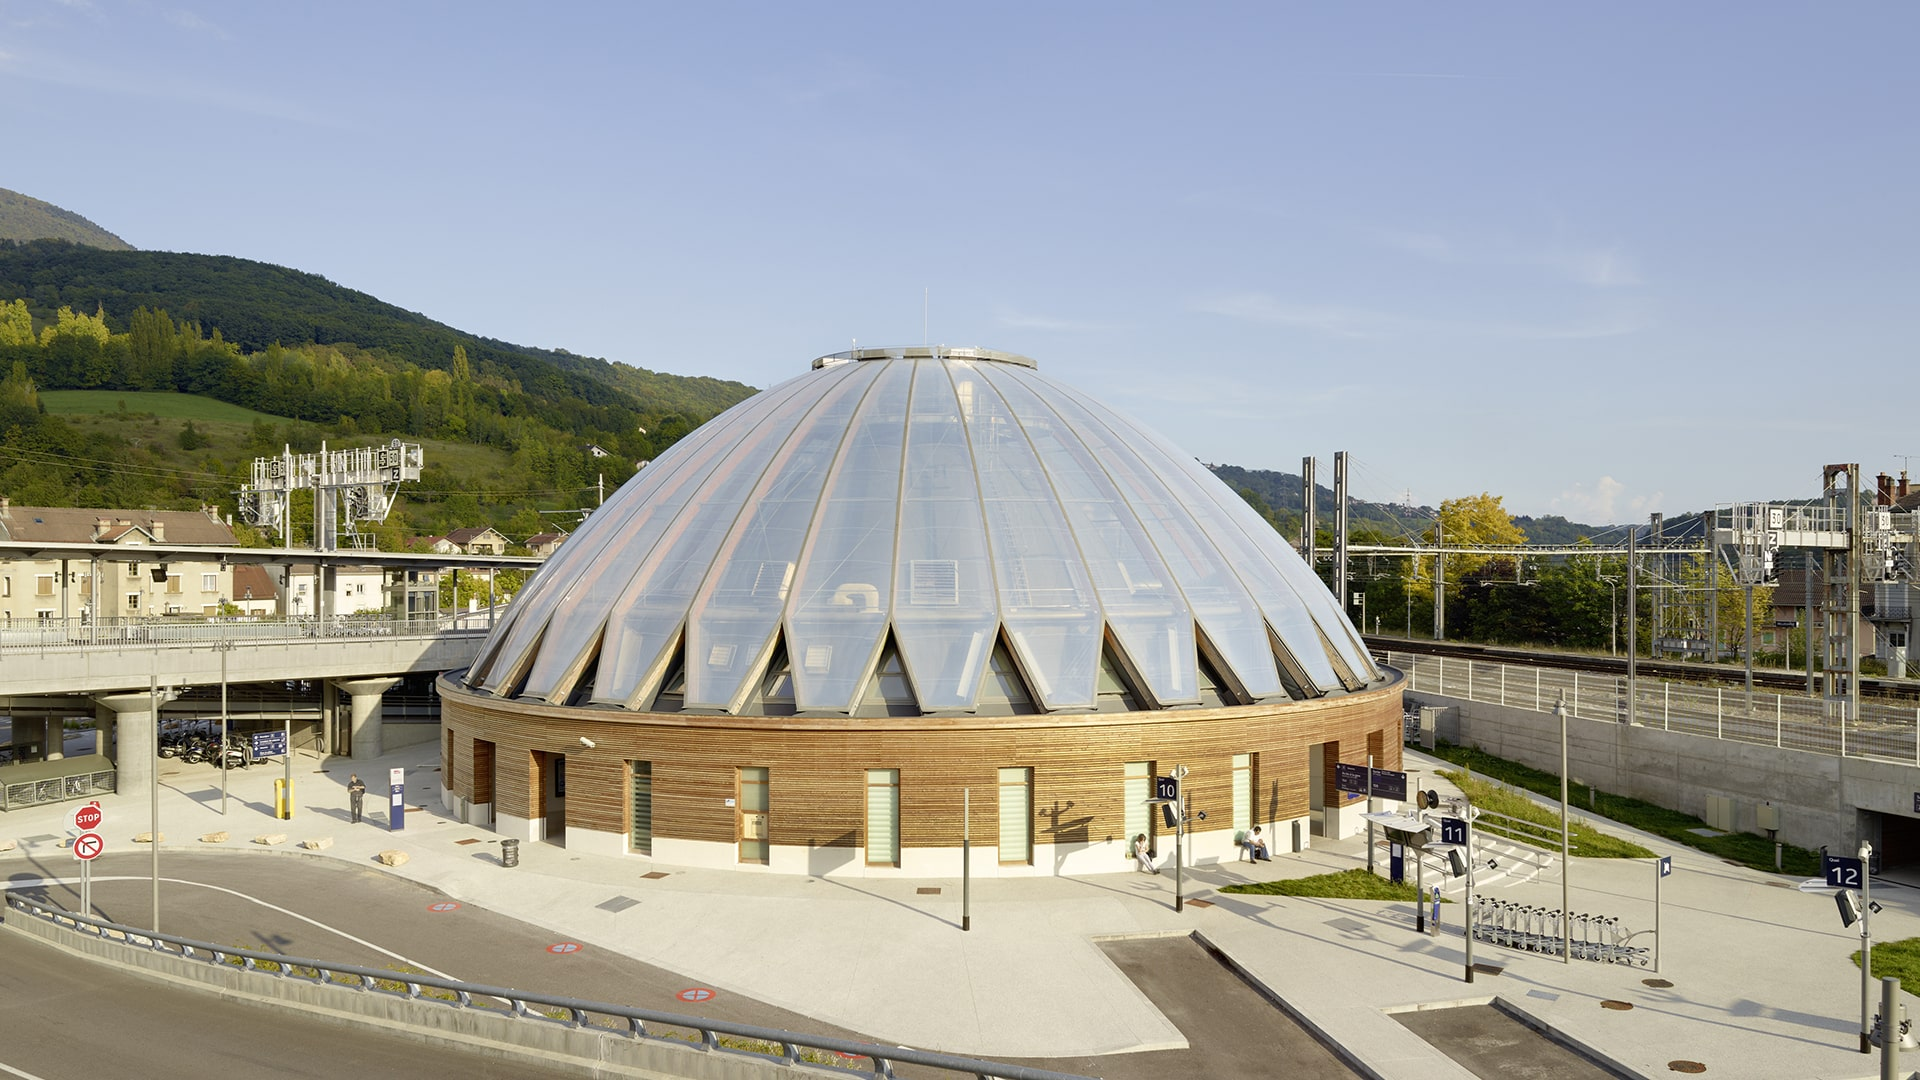 The terminal building of the station Gare de Bellegarde is covered with Texlon® ETFE cladding on a timber structure by Vector Foiltec.